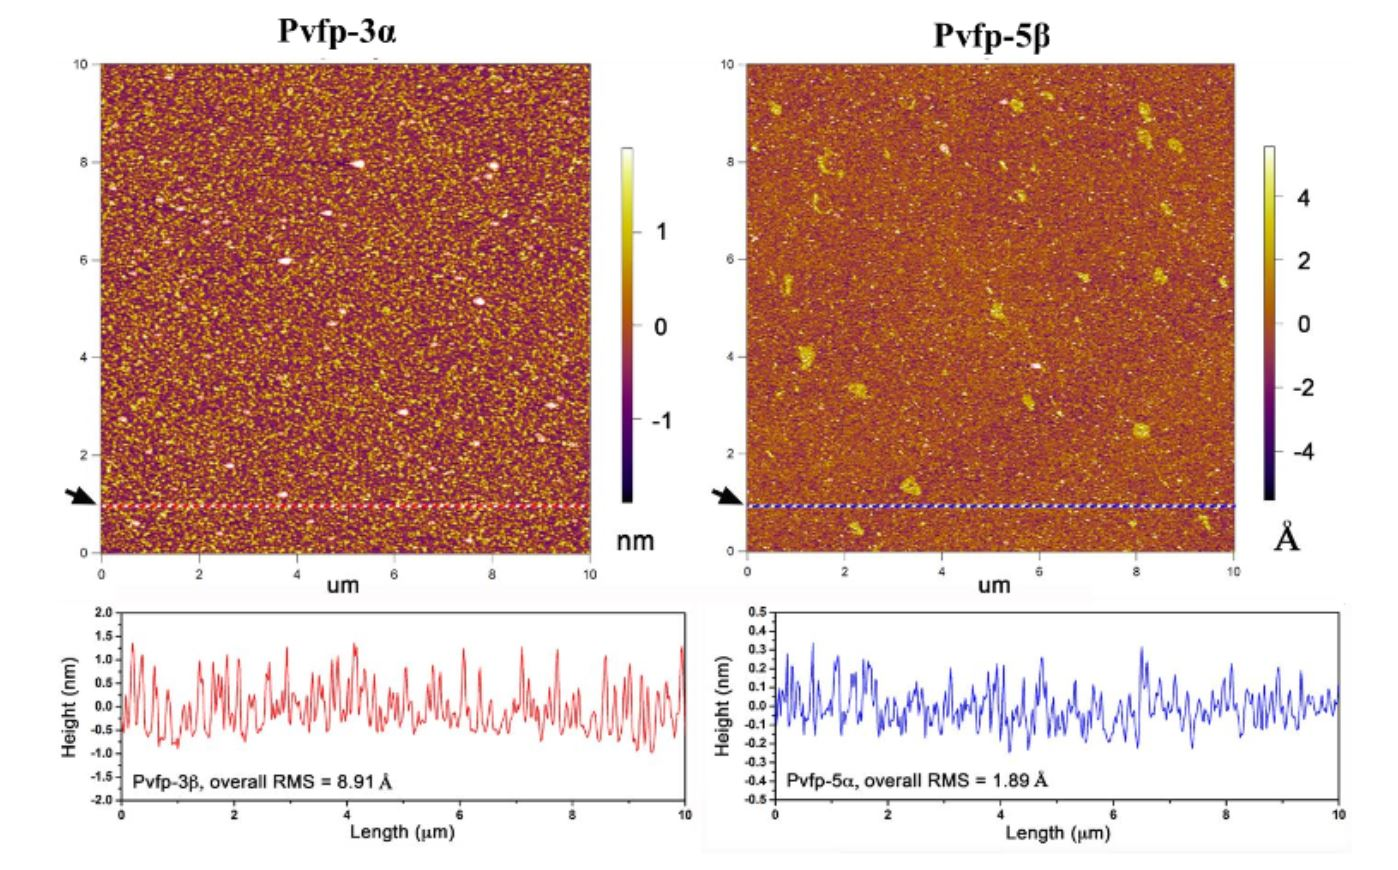 """Supplementary Figure 16 from Petrone et. al """"Mussel adhesion is dictated by time-regulated secretion and molecular conformation of mussel adhesive proteins"""": Atomic Force Microscopy (AFM) of mussel adhesive proteins on mica. AFM images of dry Pvfp-3α and Pvfp-5β adsorbed from 0.02 mg ml-1 solution in 5% acetic acid and 0.25 MO3 on mica. After 20 min adsorption, the mica surfaces were washed with protein -free buffer, and the AFM images show the homogenous distribution of the resulting adsorbed proteins. The height profiles for both proteins are shown in the graphs below, corresponding to the dotted red and blue lines in the respective AFM images (see black arrows)."""